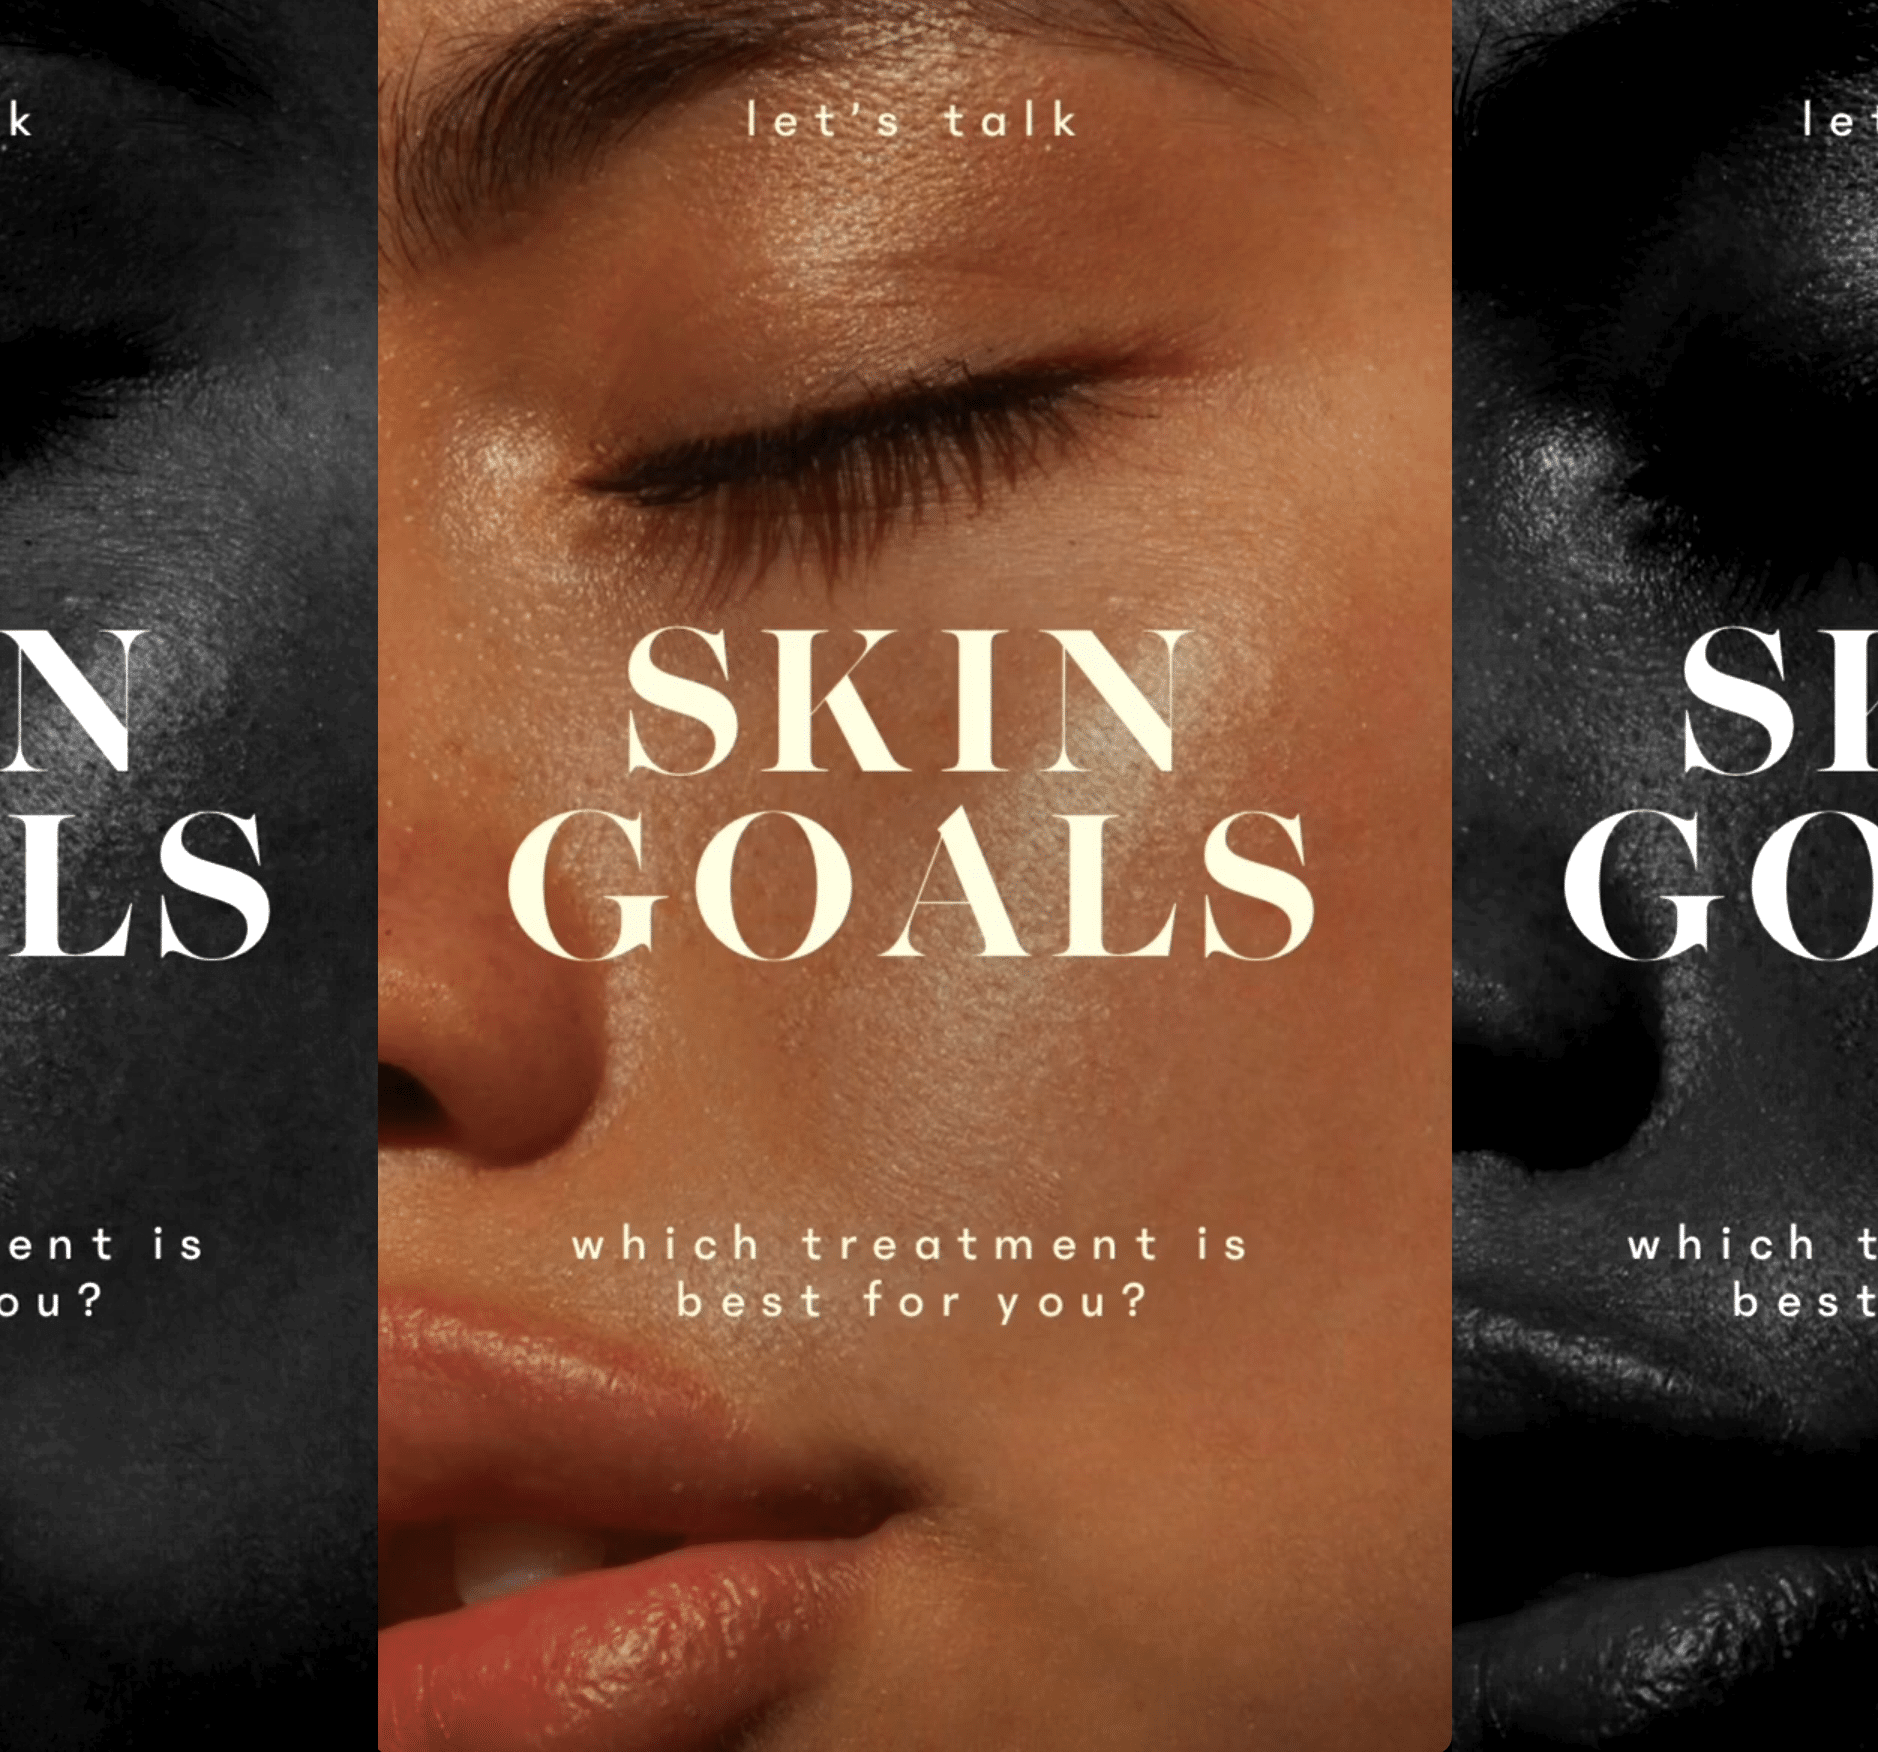 Let's Talk About Skin Goals (Which Treatment Is Best For You?)